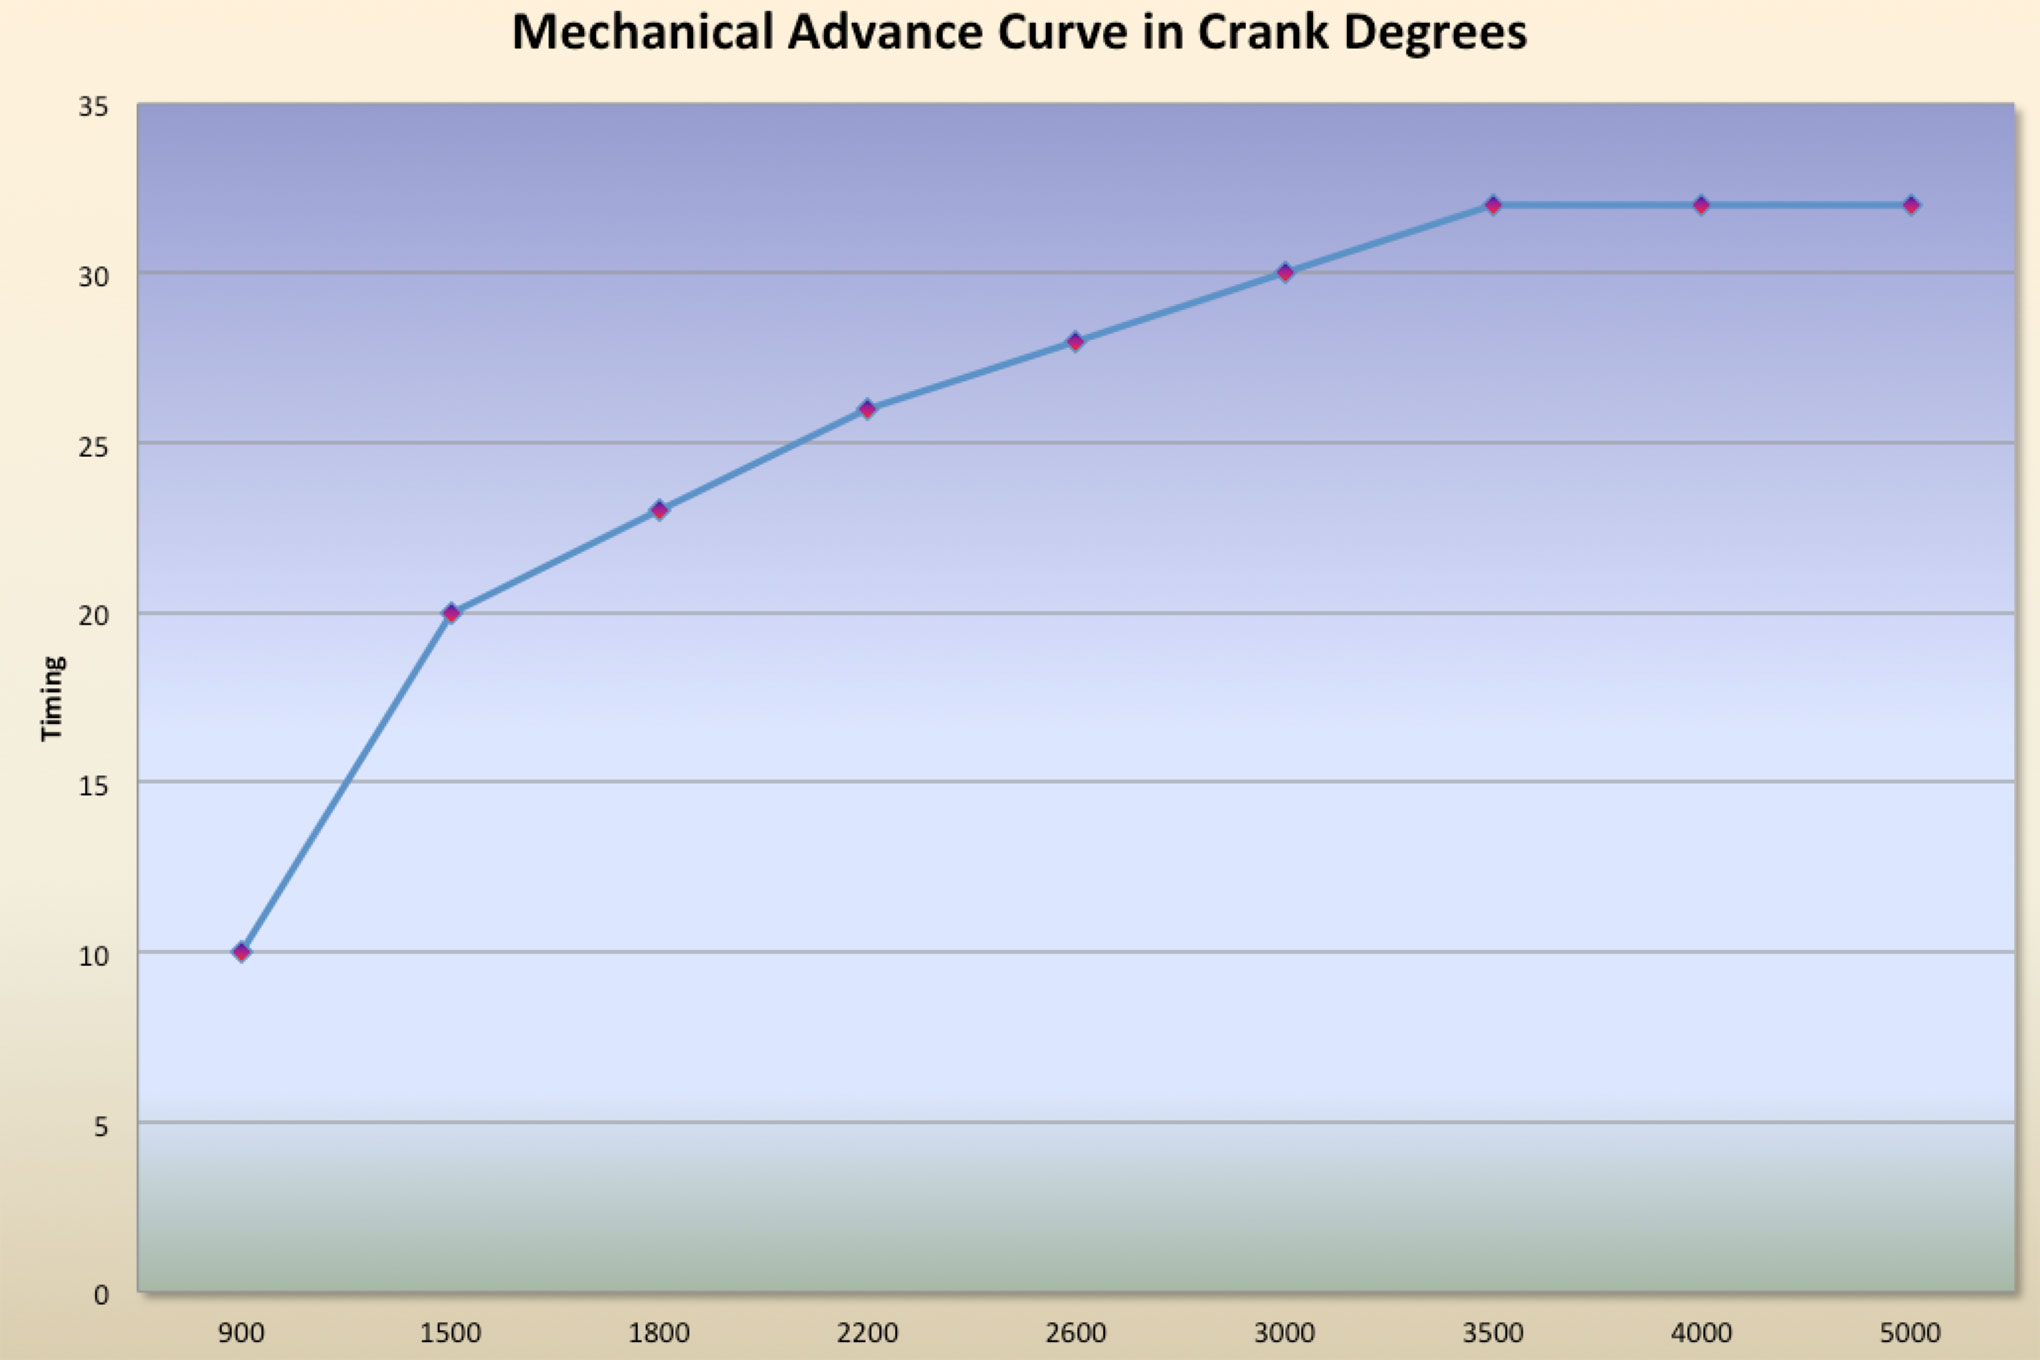 medium resolution of graph a illustrates a typical mechanical advance curve that includes the initial timing of 10 degrees with a total of 32 degrees